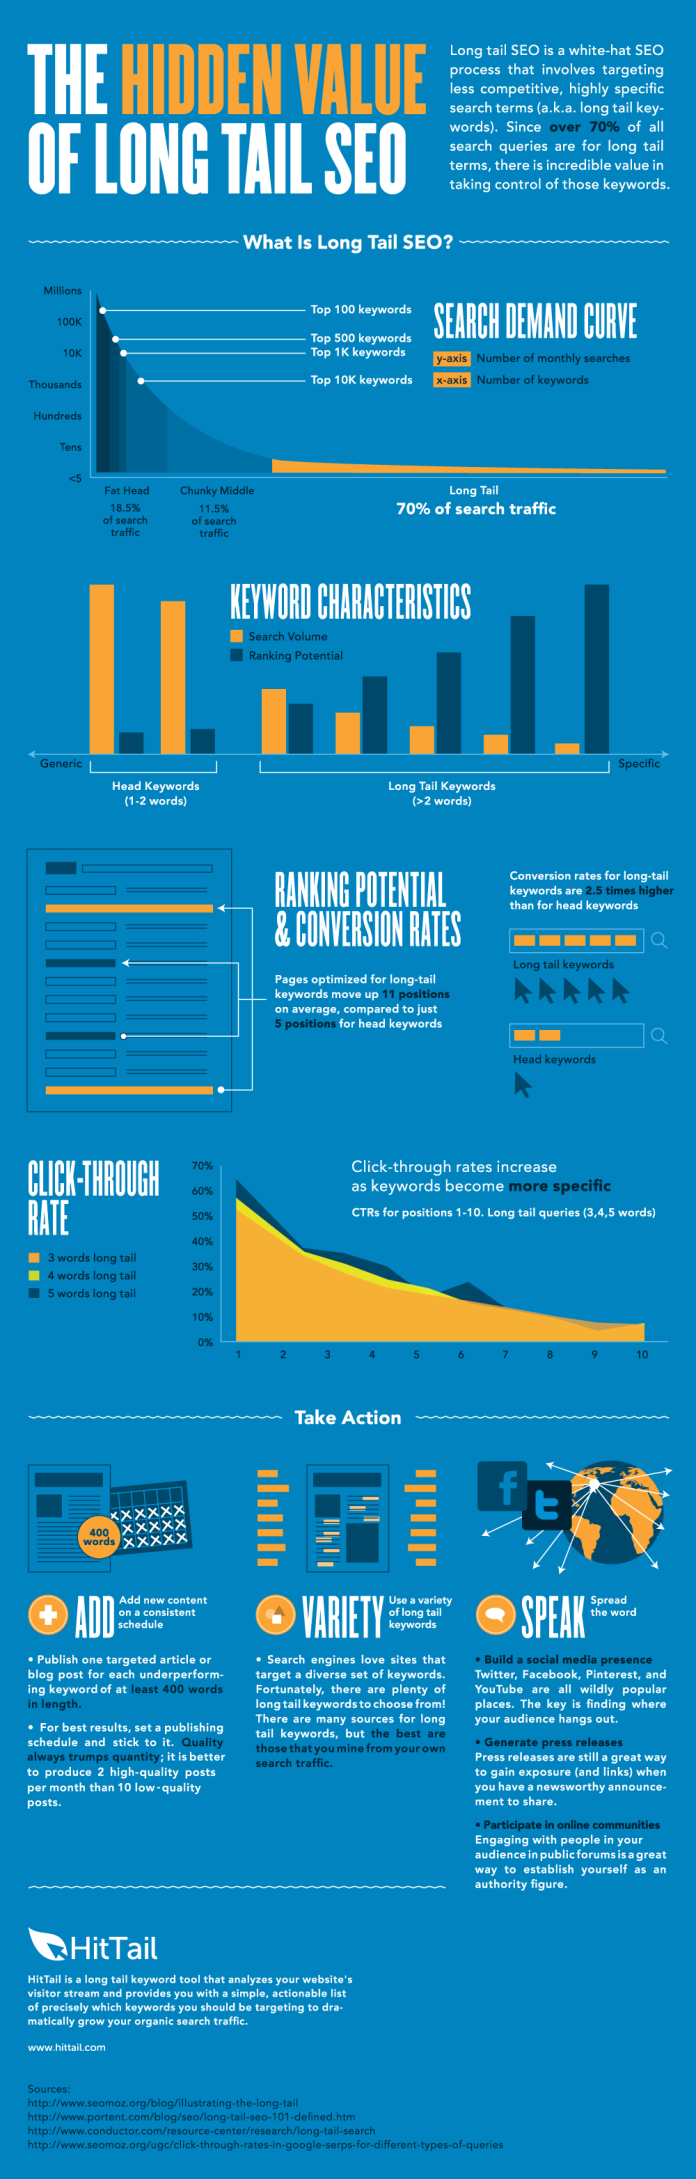 The Hidden Value of Long-Tail SEO